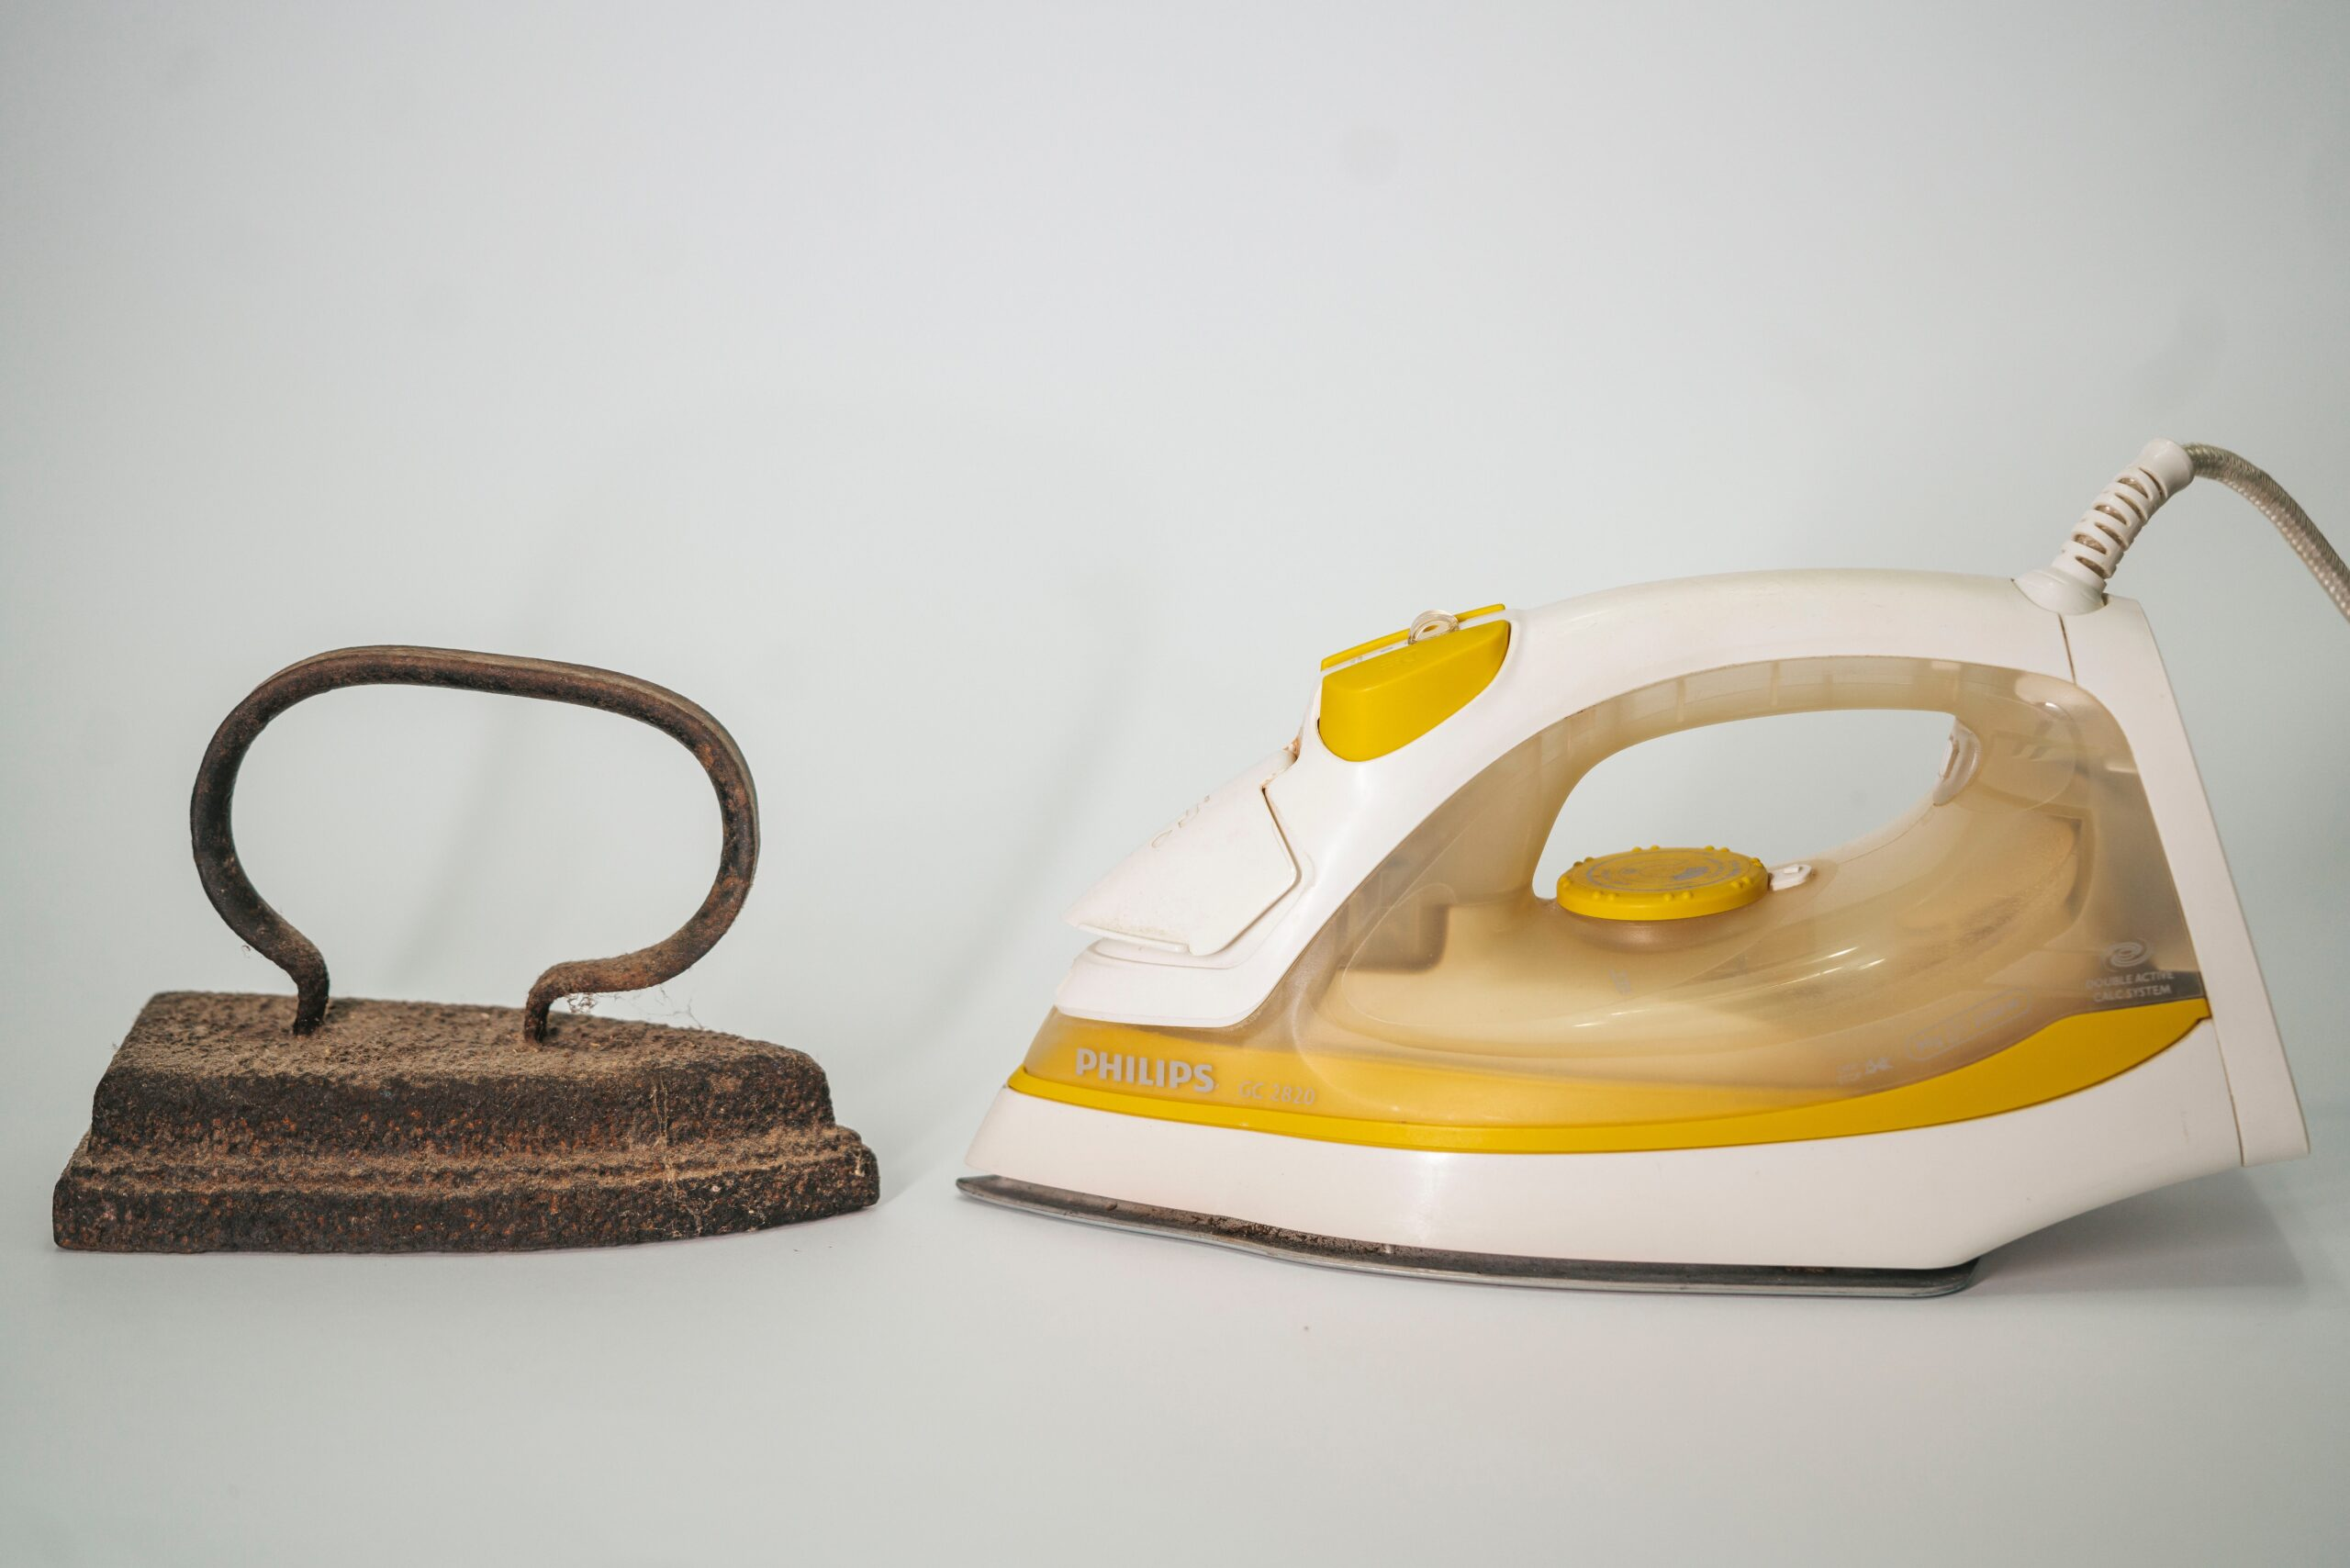 Two Irons for removing marks from wood